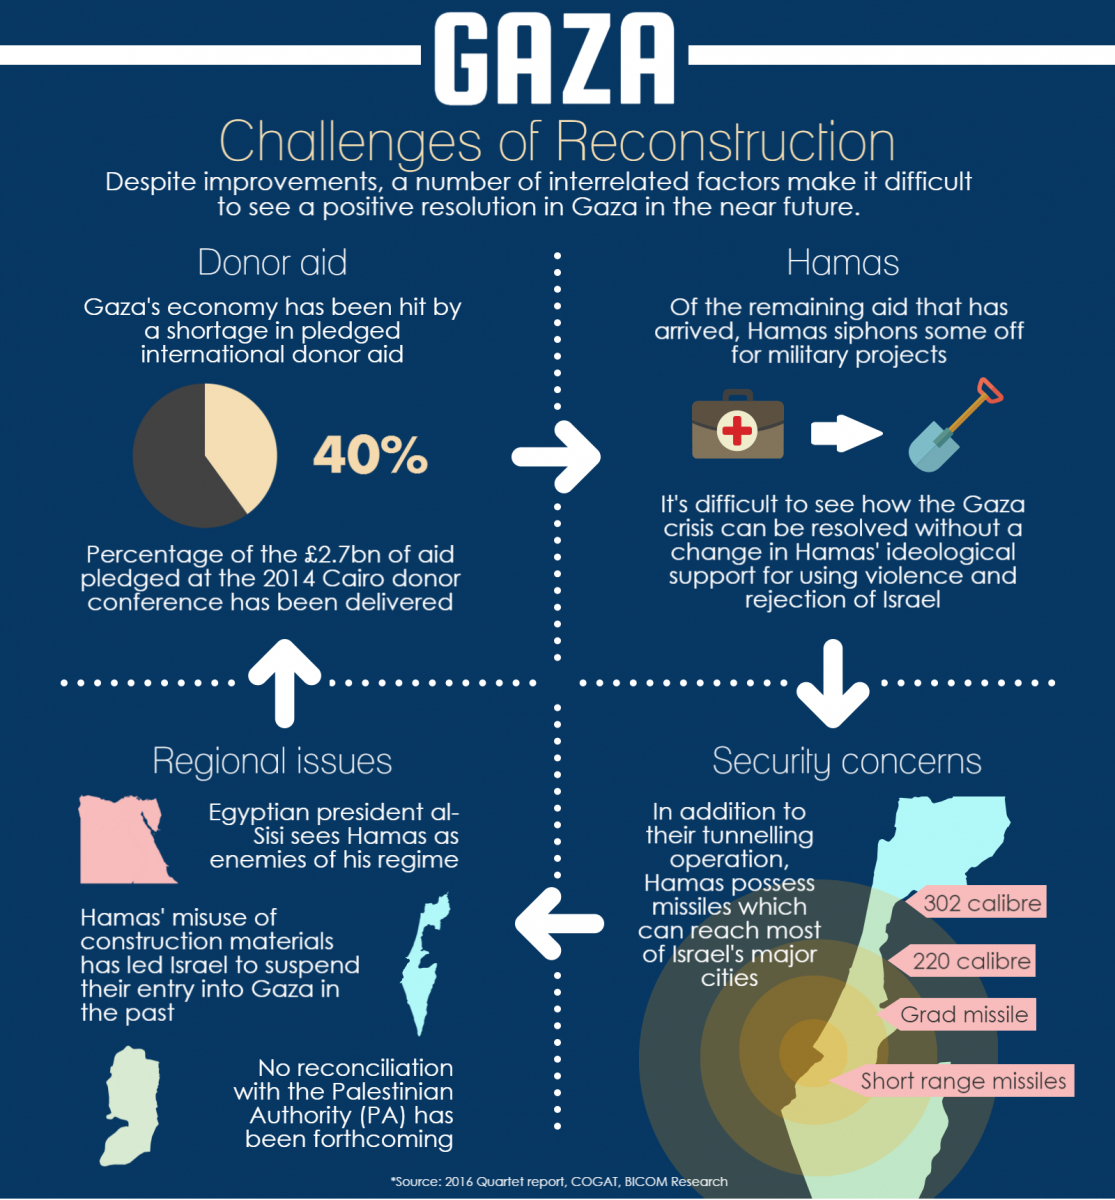 gaza-infographic-middle-social-media-no-logo-but-heading